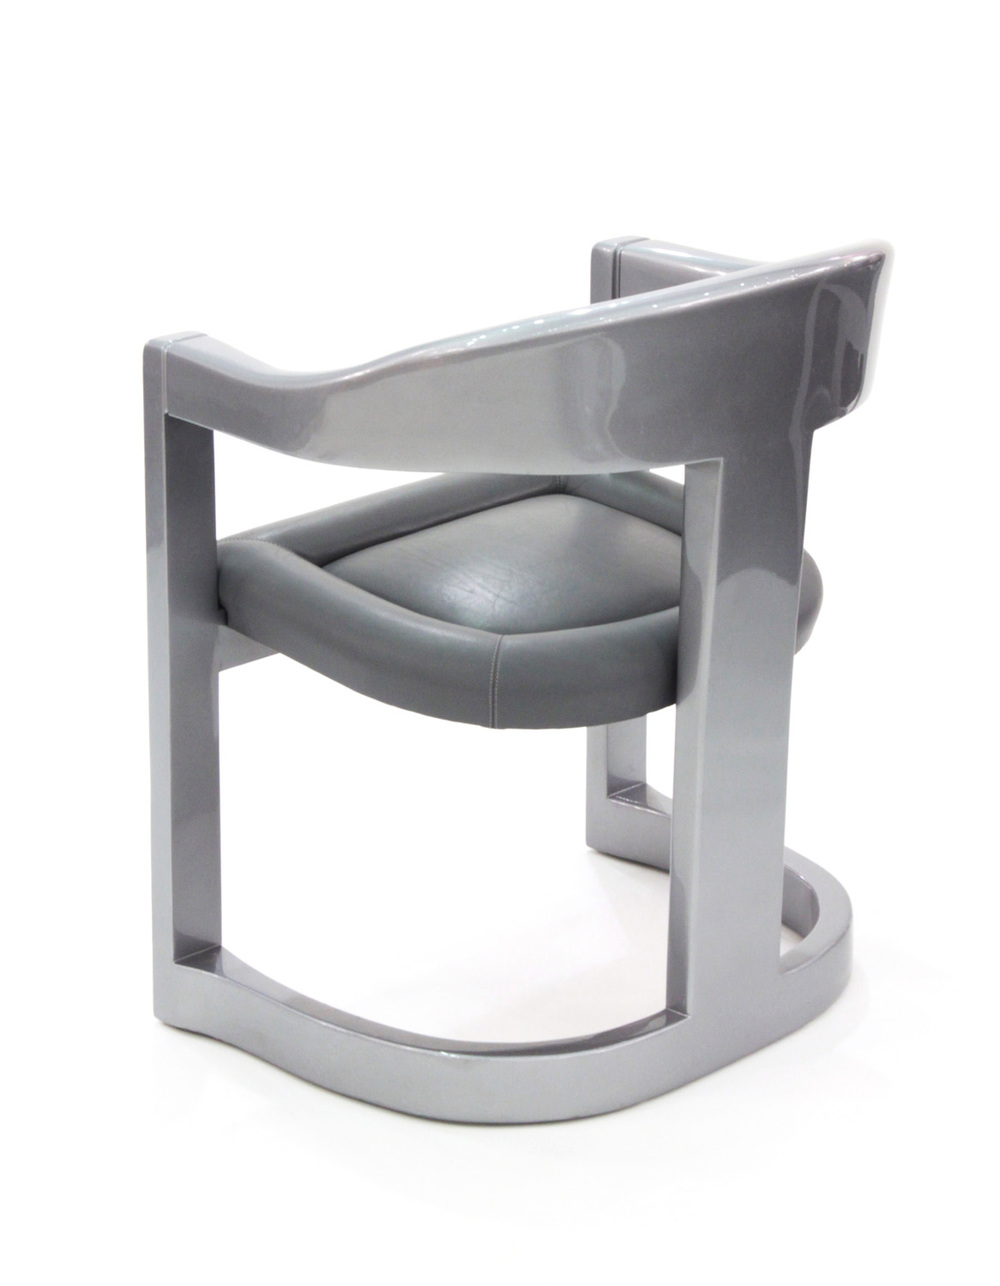 Springer 150 set4 Onassis metallic grey diningchairs back hires_1.jpg